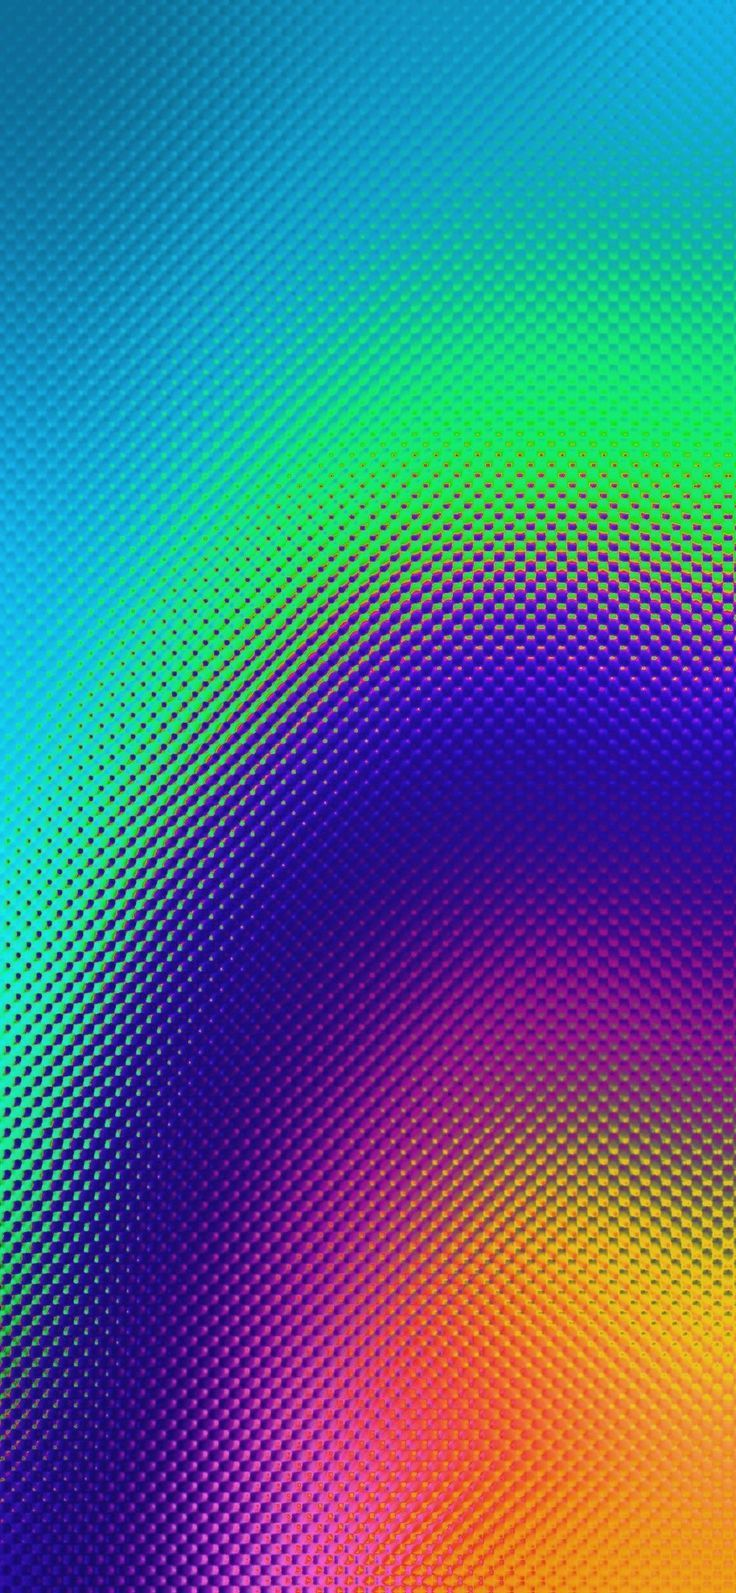 Iphone X Wallpaper Ios 11 Iphone X Purple Blue Green Iridescent Clean Simple Abstract Apple Wallpaper Iphone 8 Clean Beauty Colour Ios Minimal 3